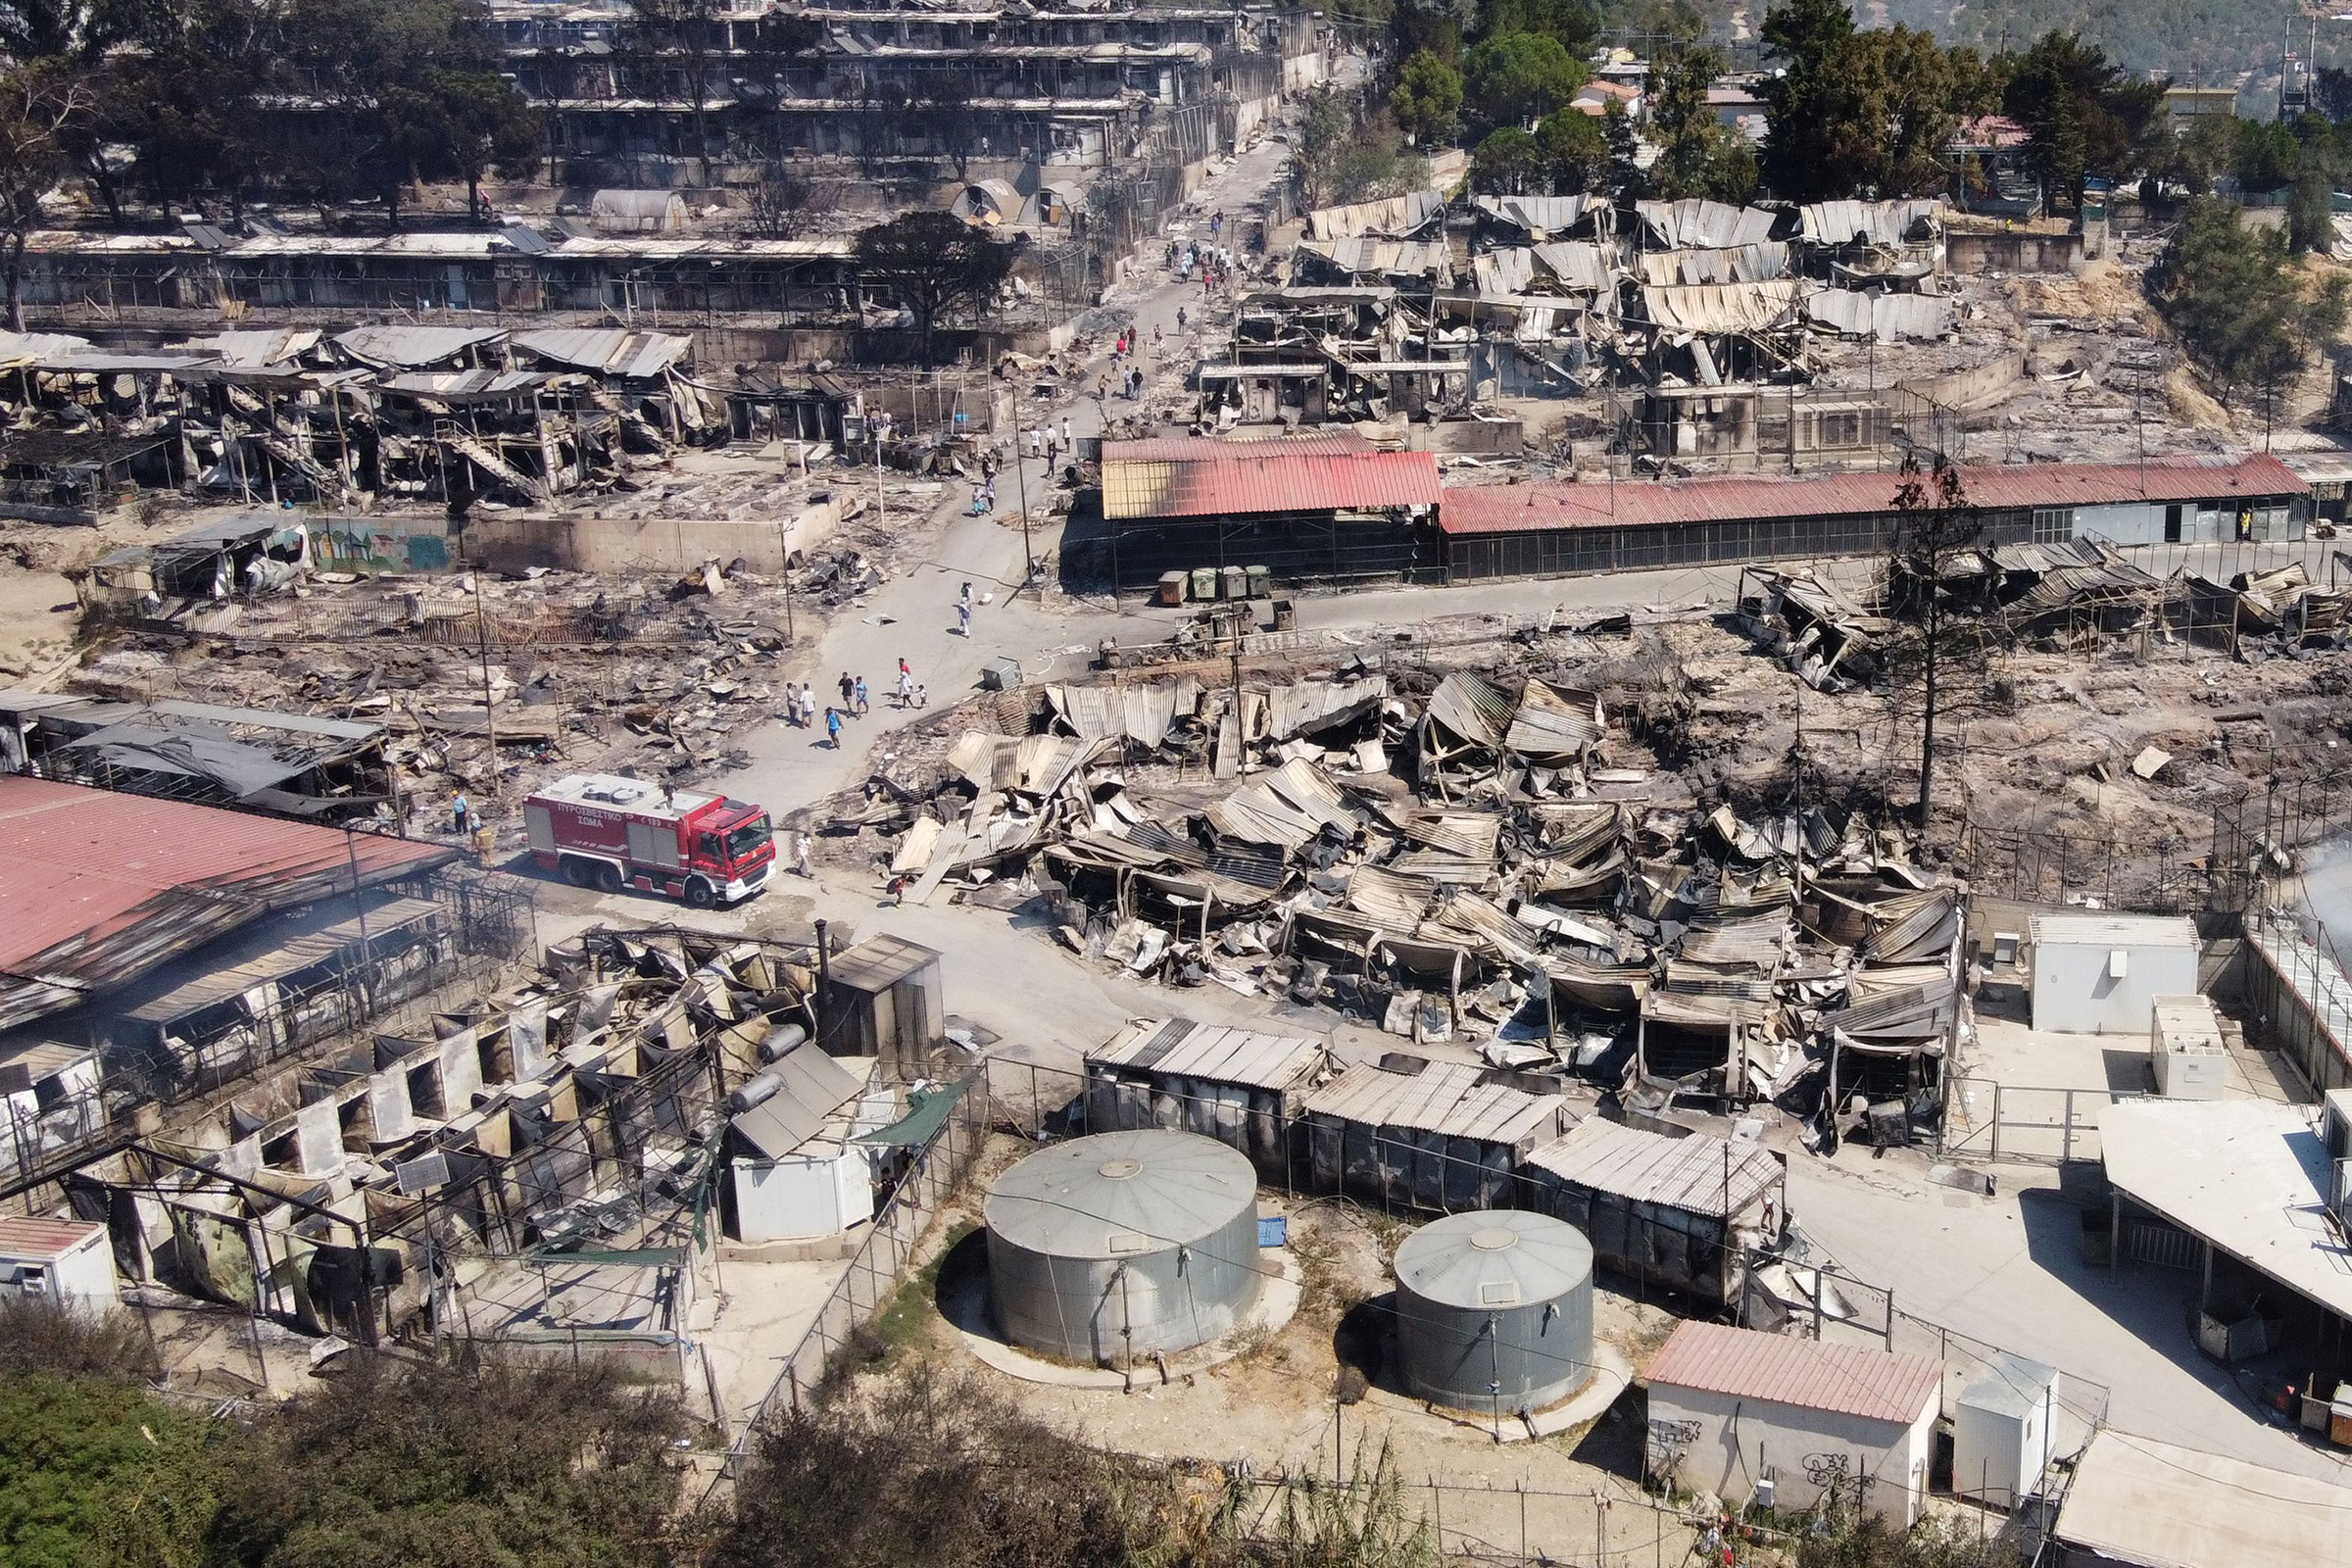 An aerial view of destroyed shelters following a fire at the Moria refugee camp in Lesbos, Greece.